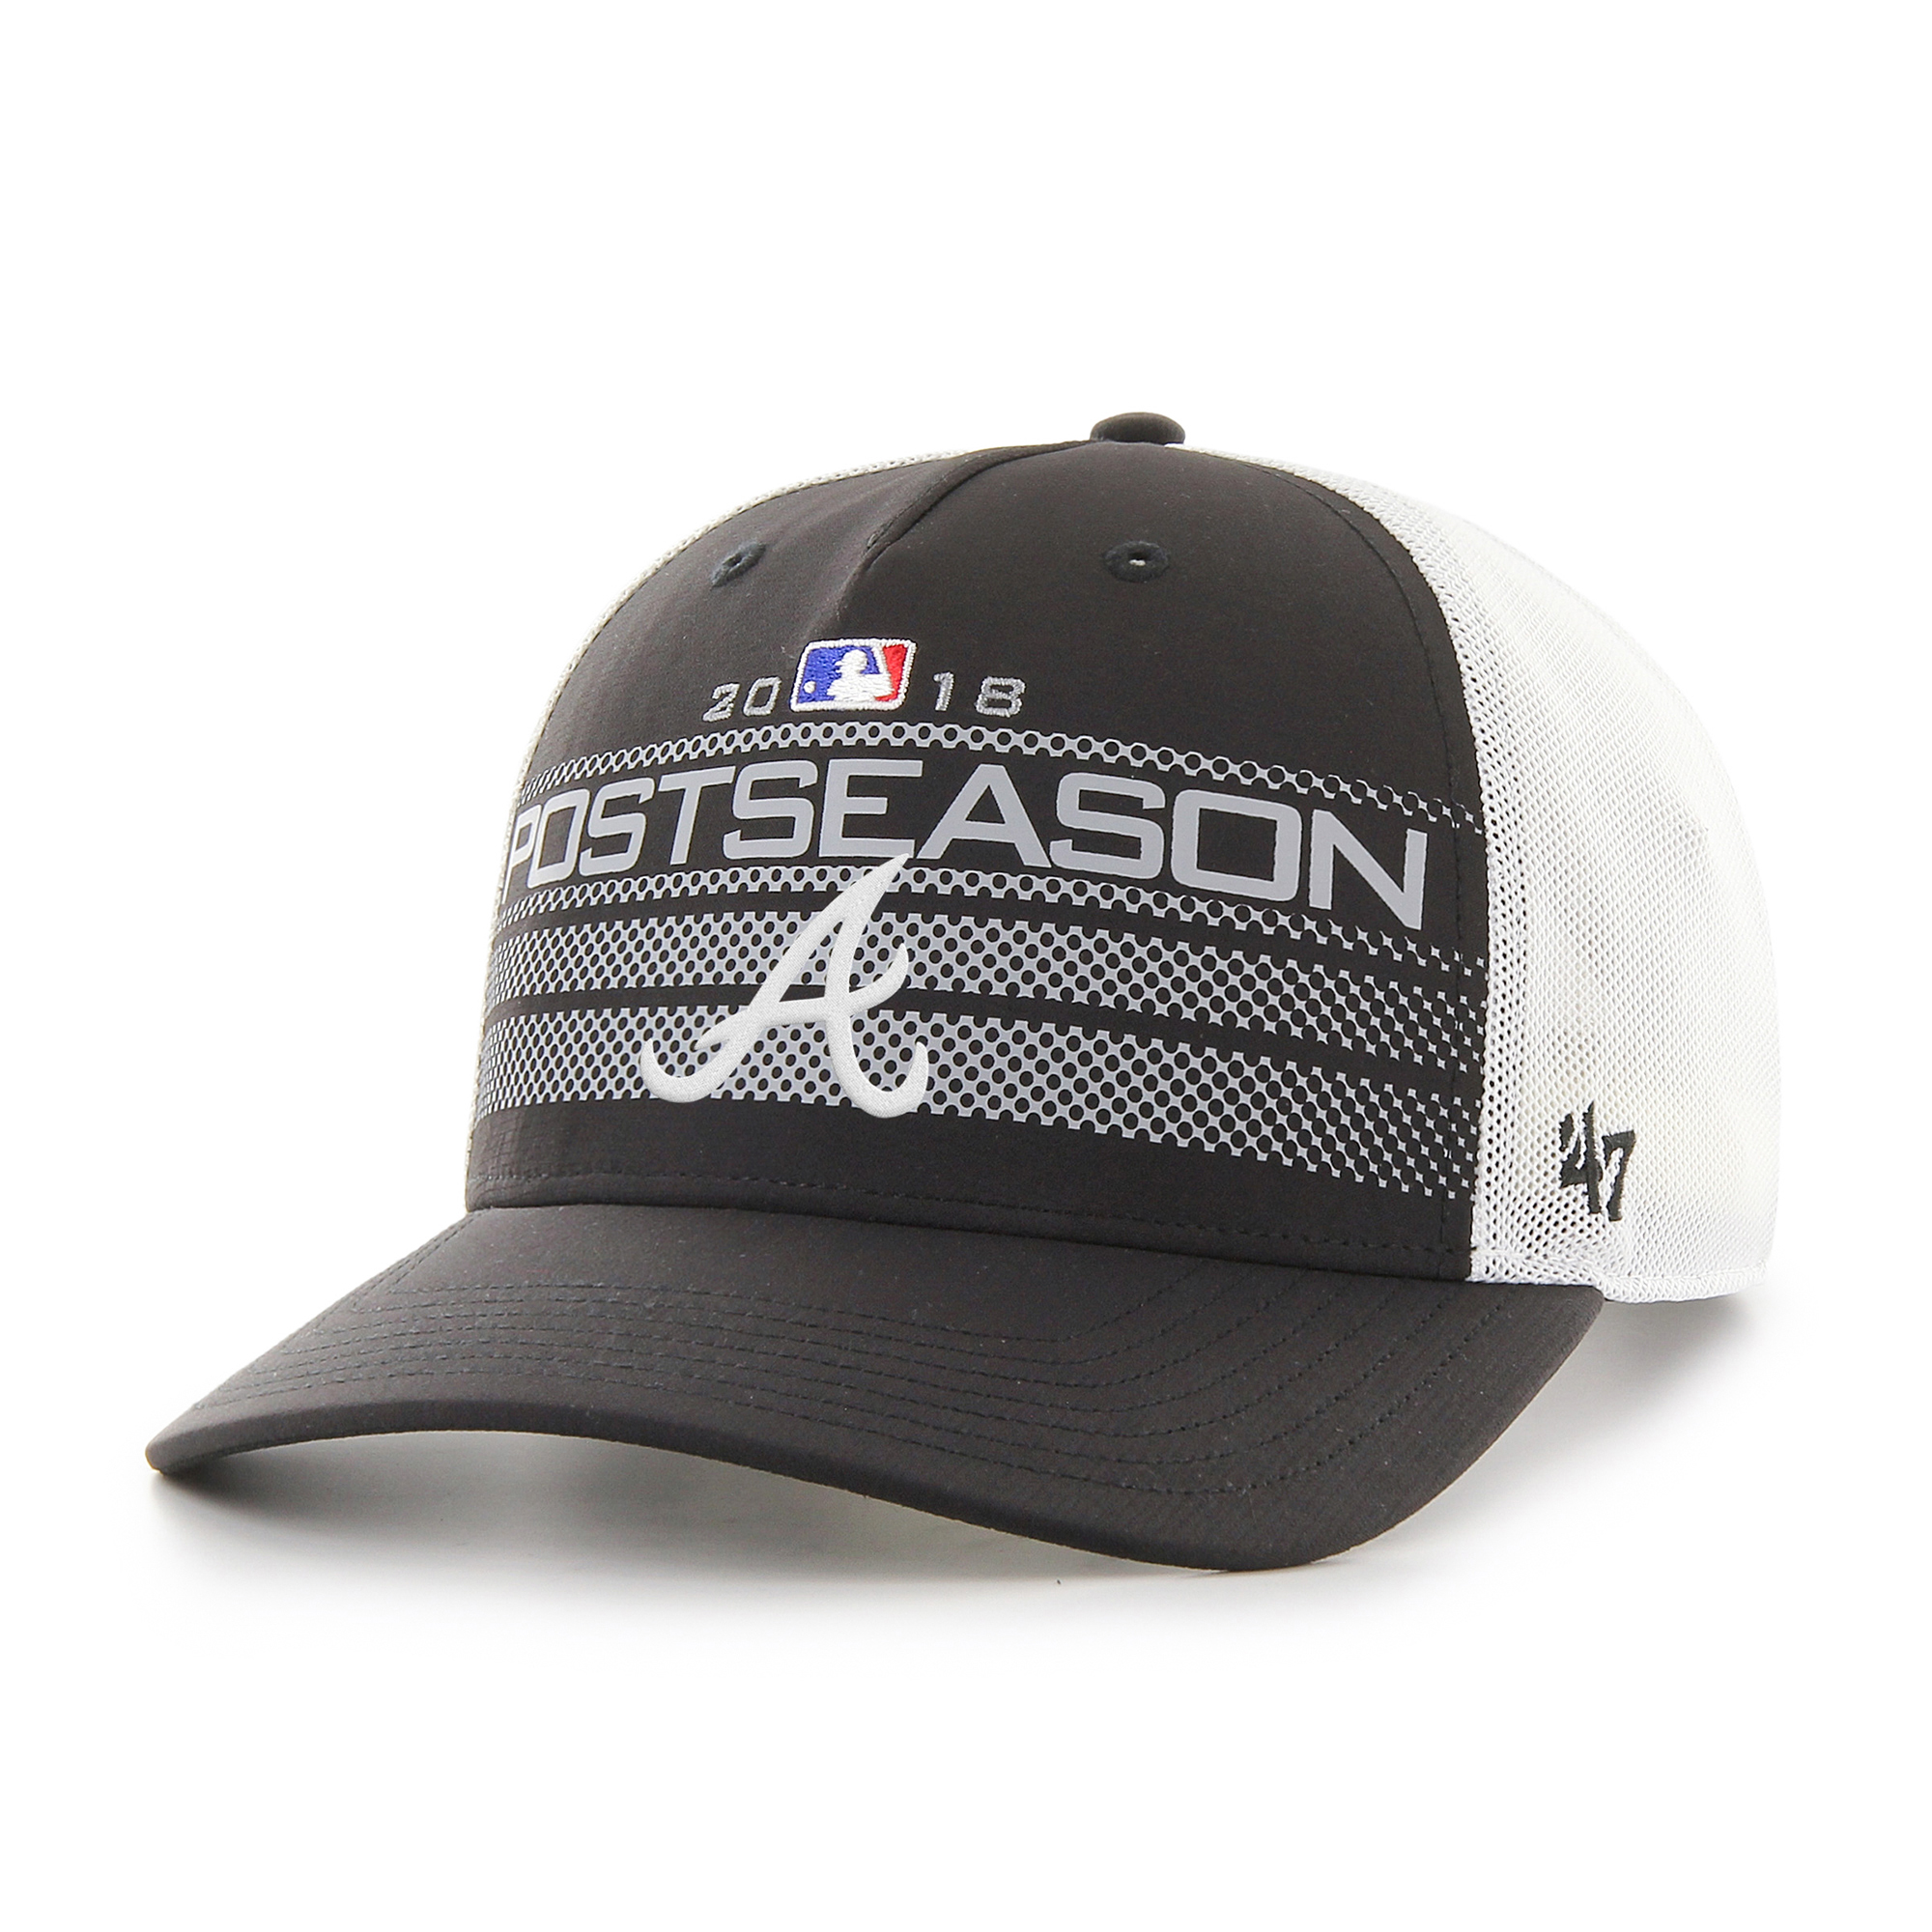 Atlanta Braves '47 2018 Postseason Official On-Field Altitude Adjustable Hat - Black - OSFA